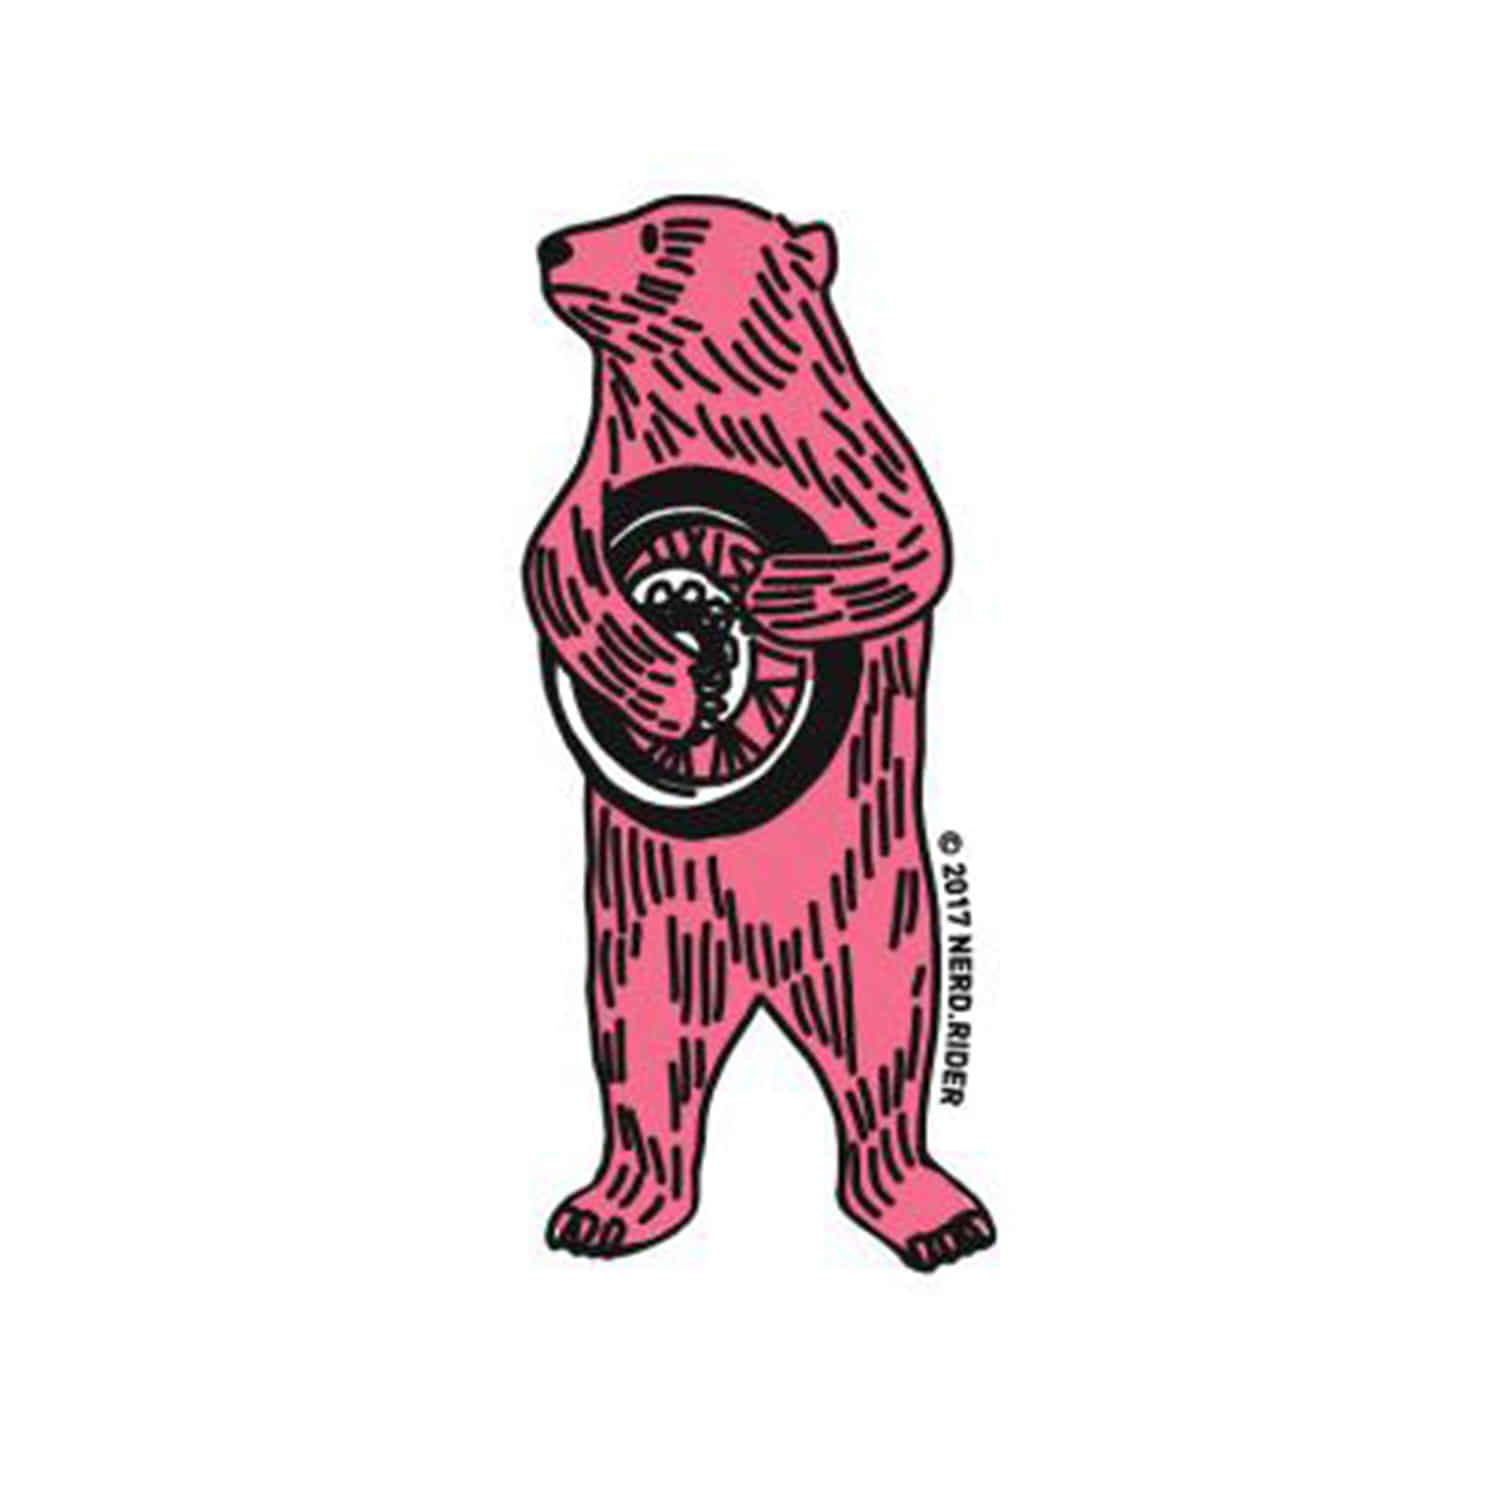 [너드 스티커] NERD - Spoke bear sticker